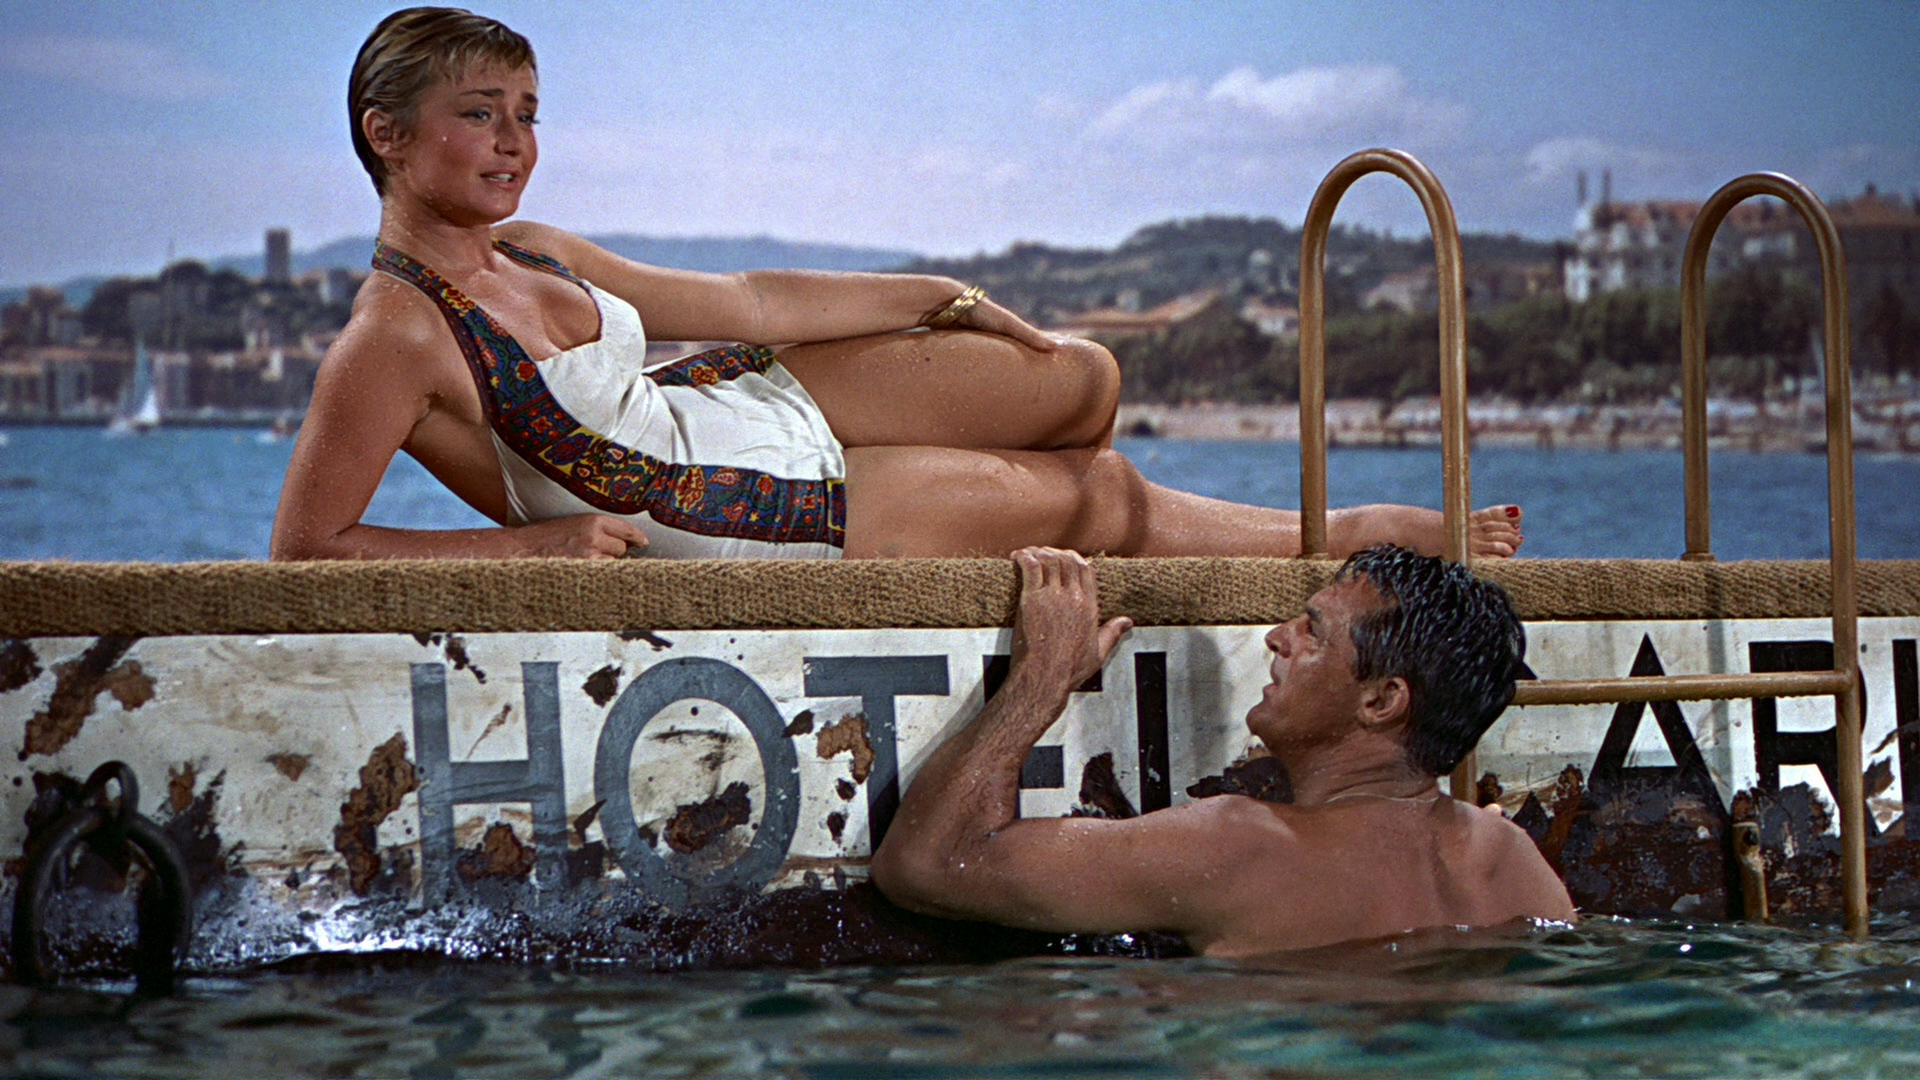 Excellent location forhotel thievery: the Hotel Carlton in the French Riviera. (Image from  To Catch a Thief ).